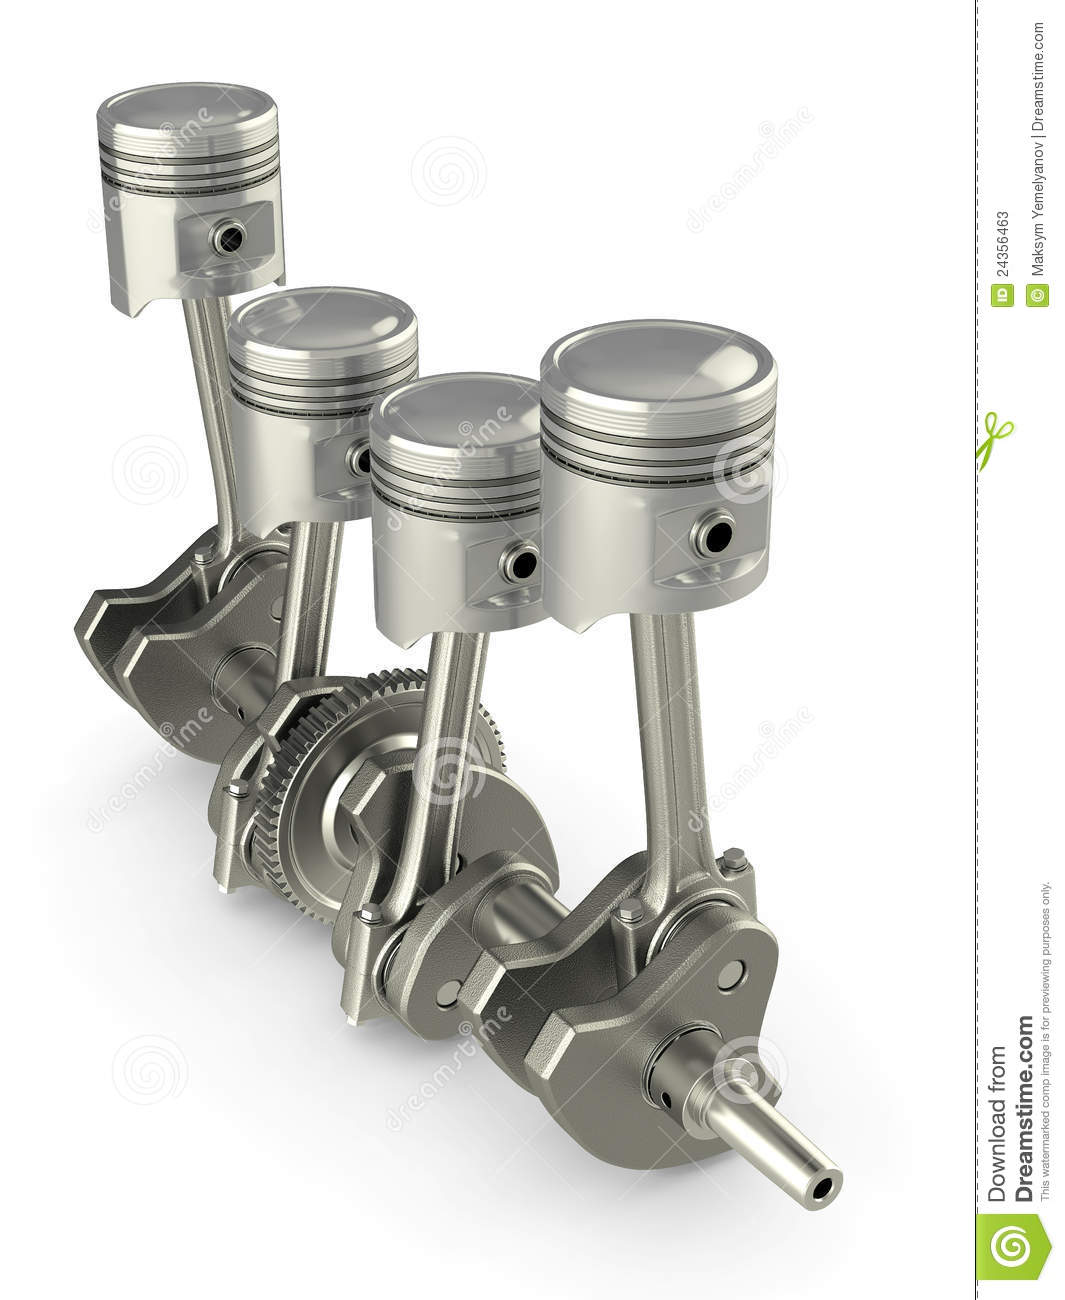 Pistons and crankshaft four cylinder engine stock photos for Best motor oil for 4 cylinder engines